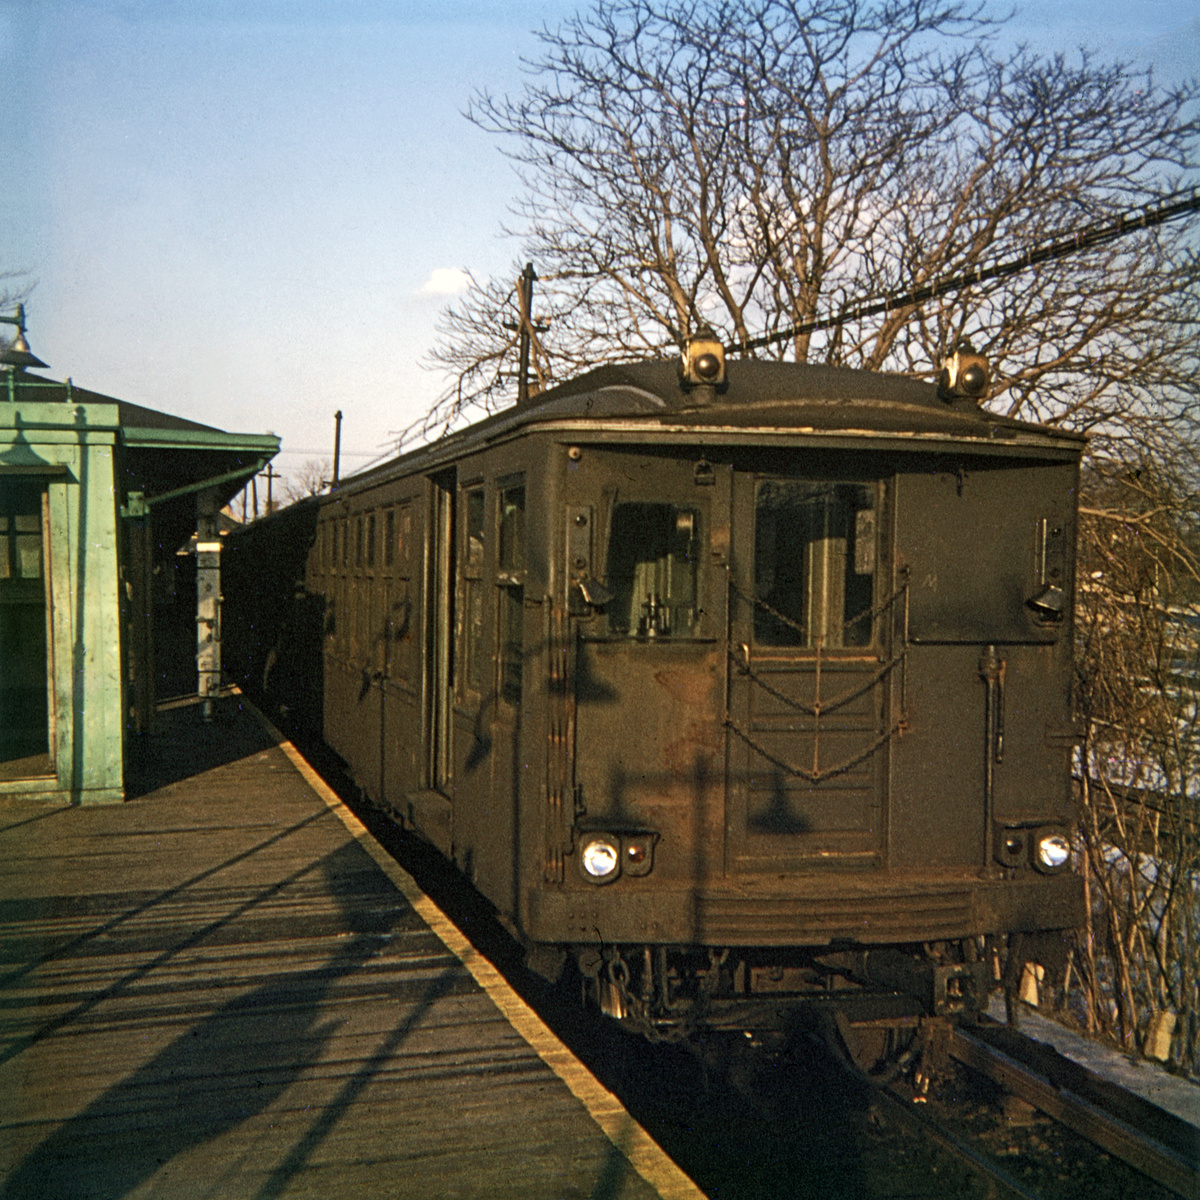 (530k, 1044x849)<br><b>Country:</b> United States<br><b>City:</b> New York<br><b>System:</b> New York City Transit<br><b>Line:</b> BMT Myrtle Avenue Line<br><b>Location:</b> Metropolitan Avenue <br><b>Car:</b> BMT Q  <br><b>Photo by:</b> Steve Hoskins<br><b>Collection of:</b> David Pirmann<br><b>Date:</b> 1/1967<br><b>Viewed (this week/total):</b> 7 / 2650